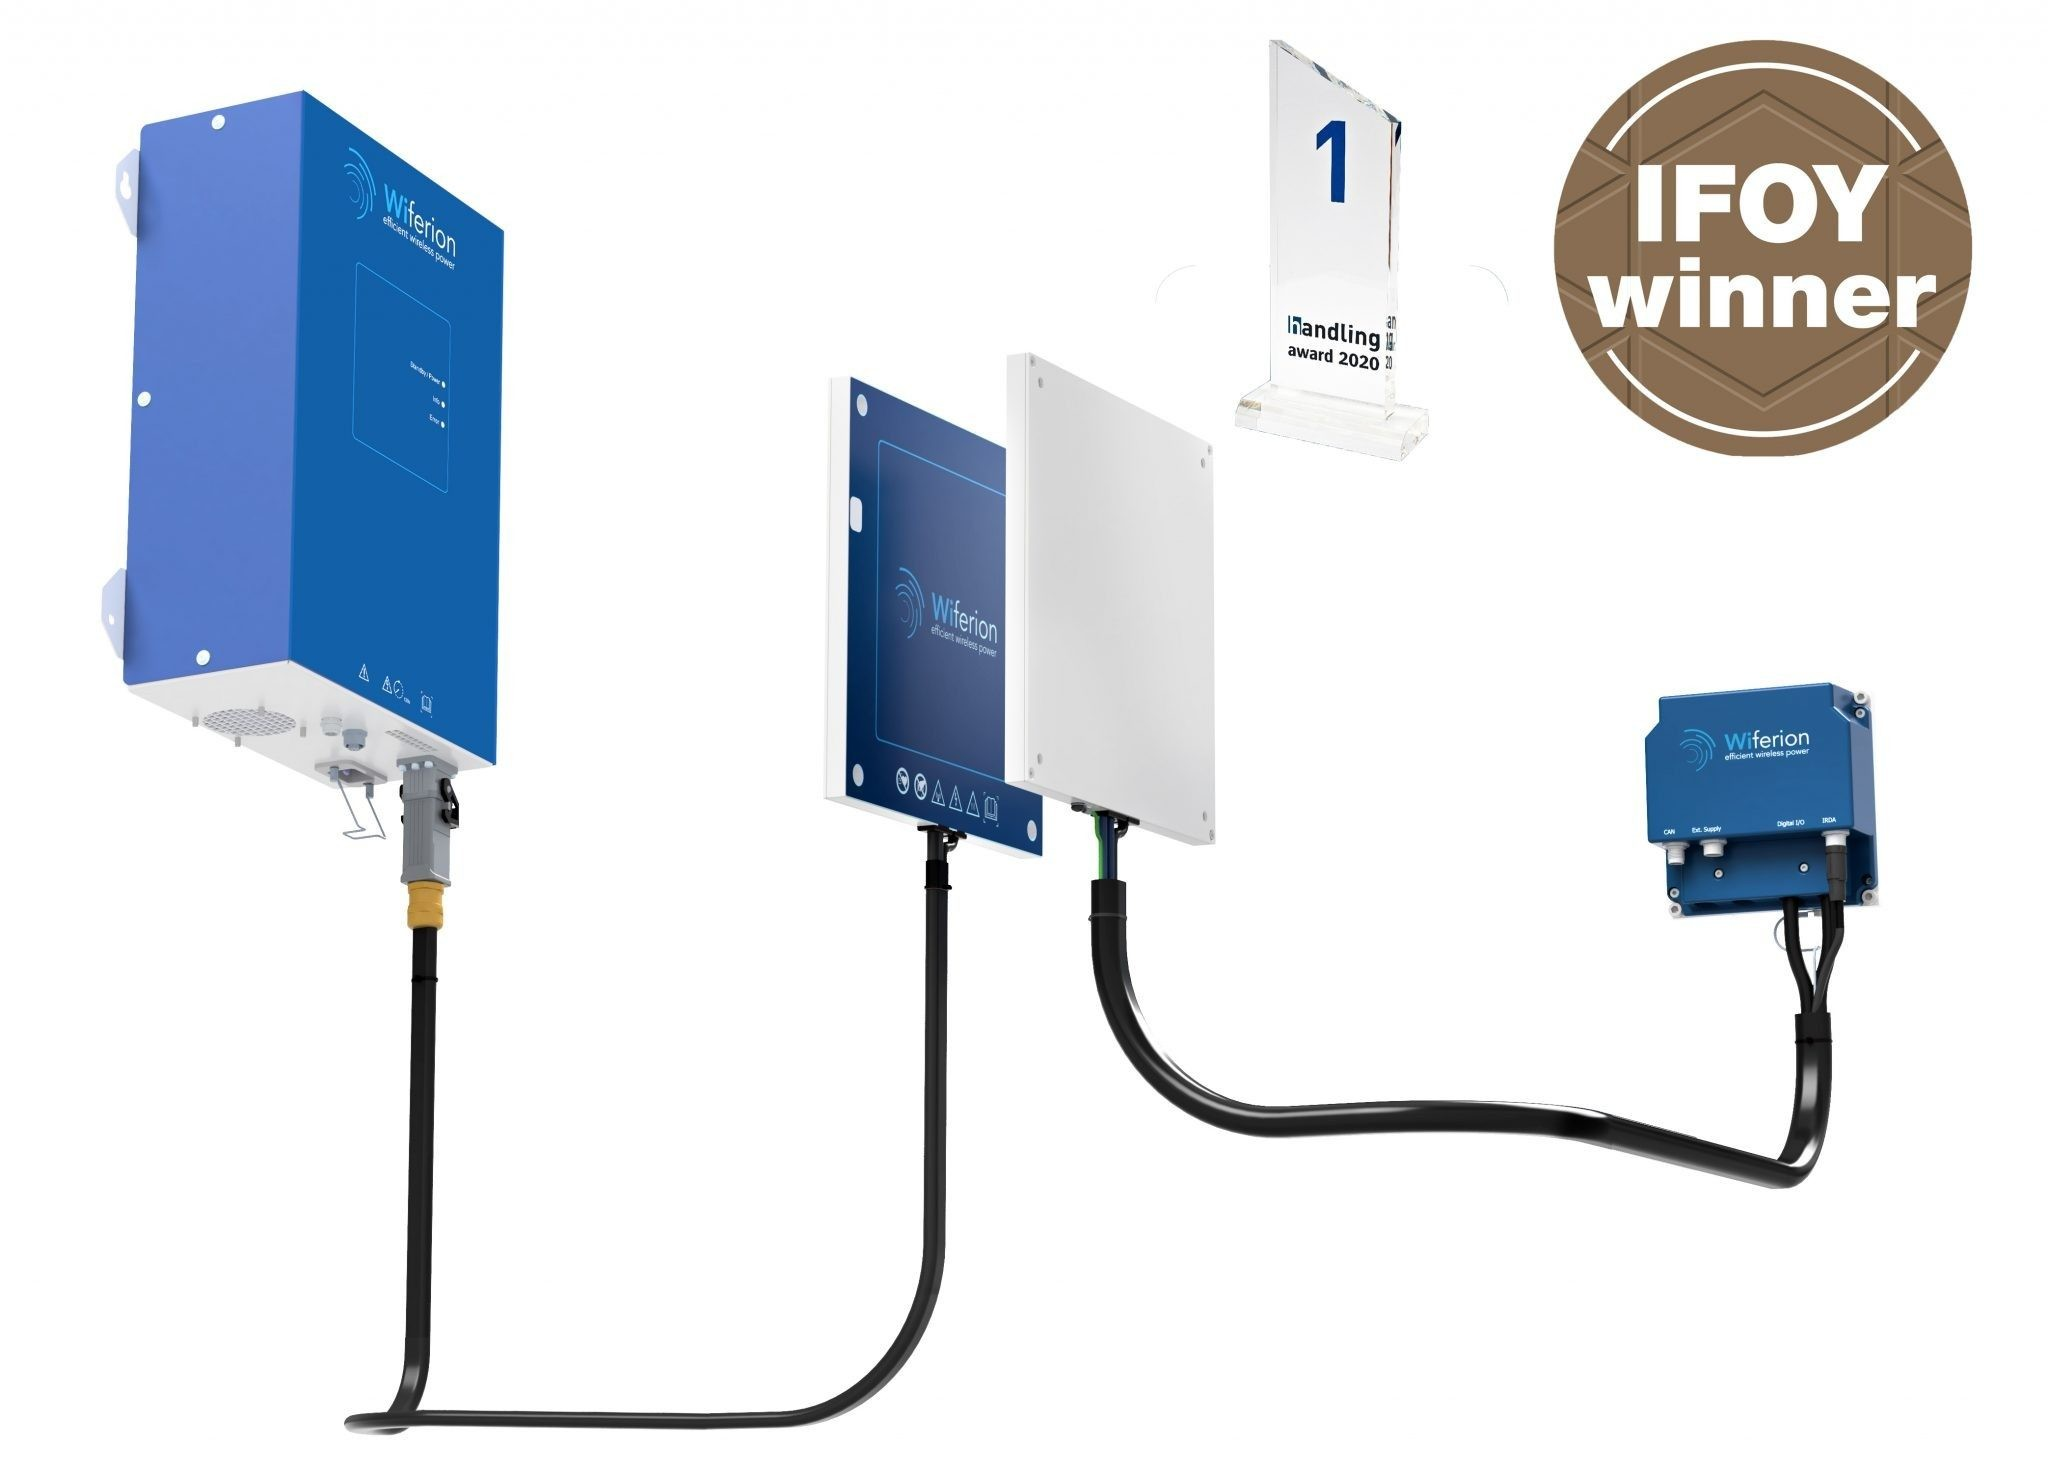 etaLINK 3000 - industrial wireless power - industrielles induktives laden - industrial wireless charging - ifoy winner - handling award winner